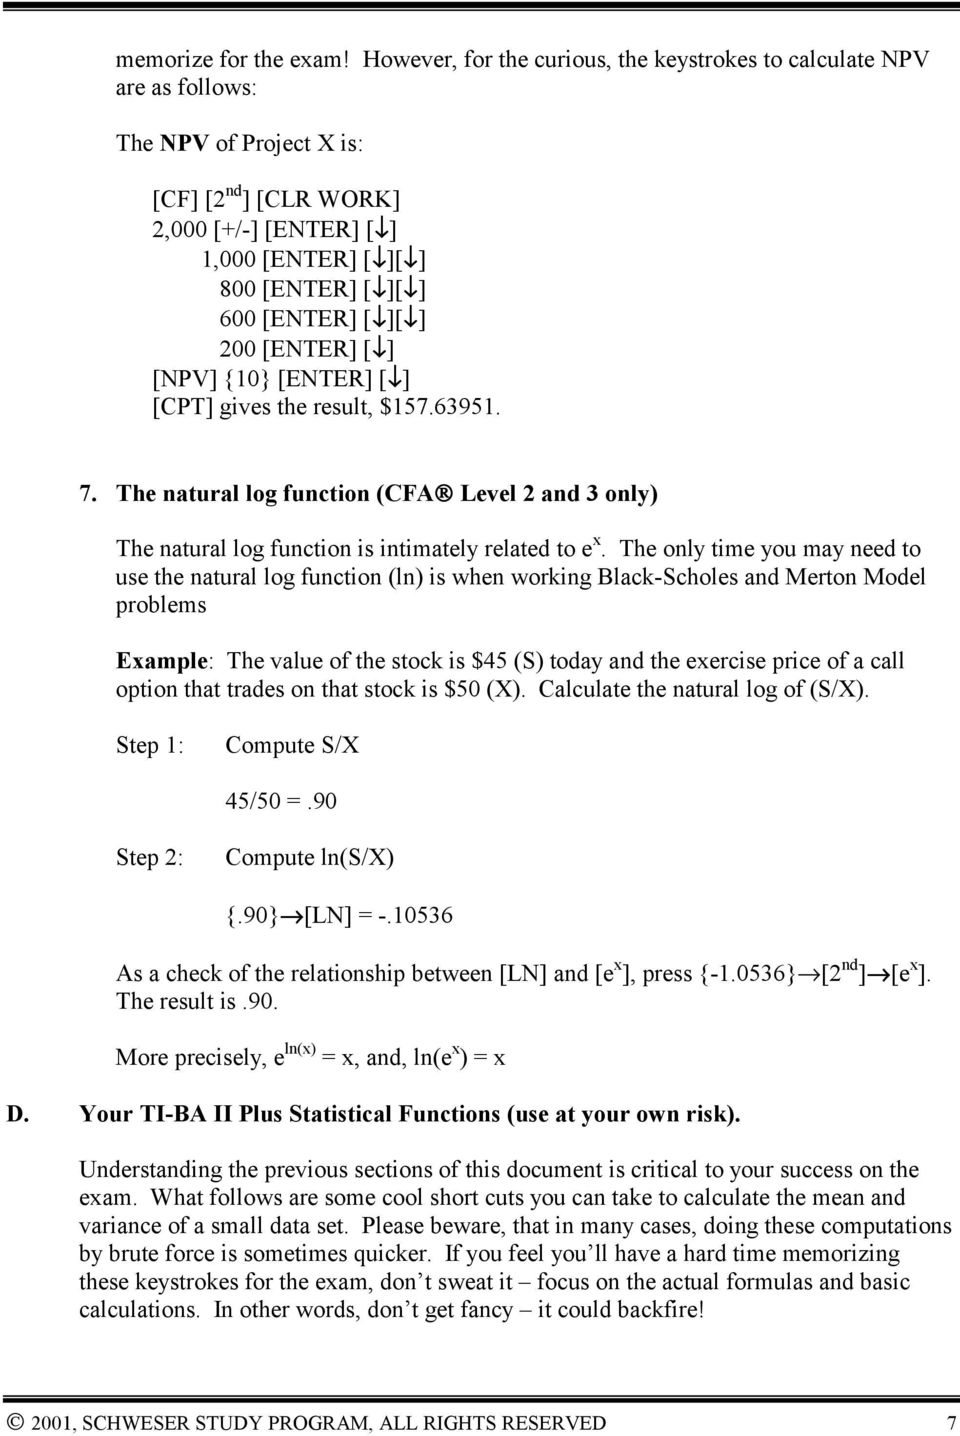 [ ][ ] 200 [ENTER] [ ] [NPV] {10} [ENTER] [ ] [CPT] gives the result, $157.63951. 7. The natural log function (CFA Level 2 and 3 only) The natural log function is intimately related to e x.